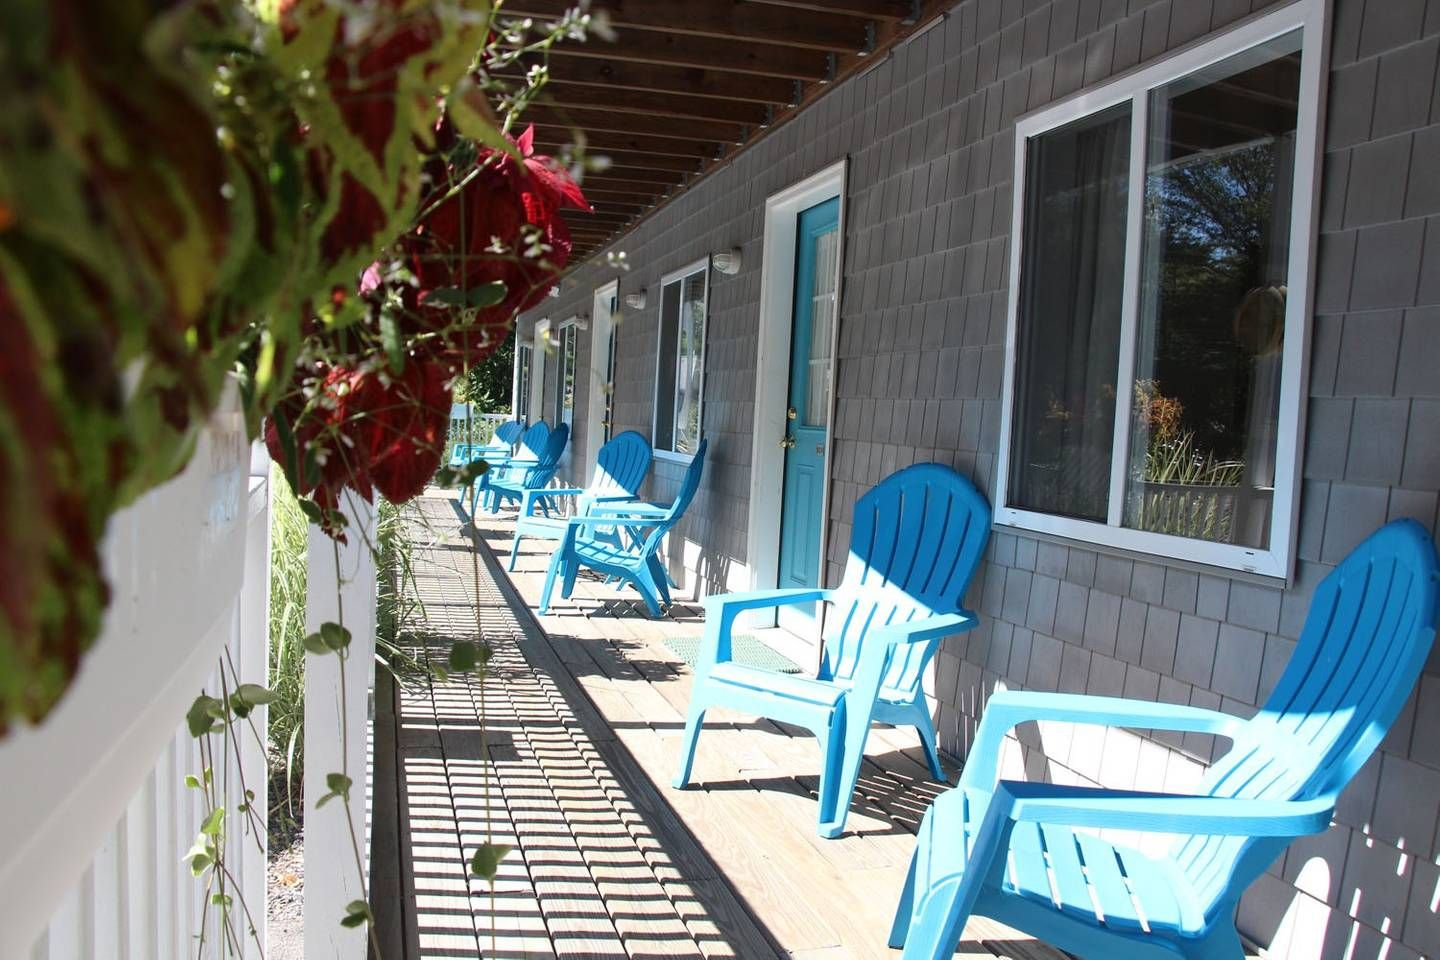 600sqft apt, 5 minute walk to Long sands! - Apartments for ...